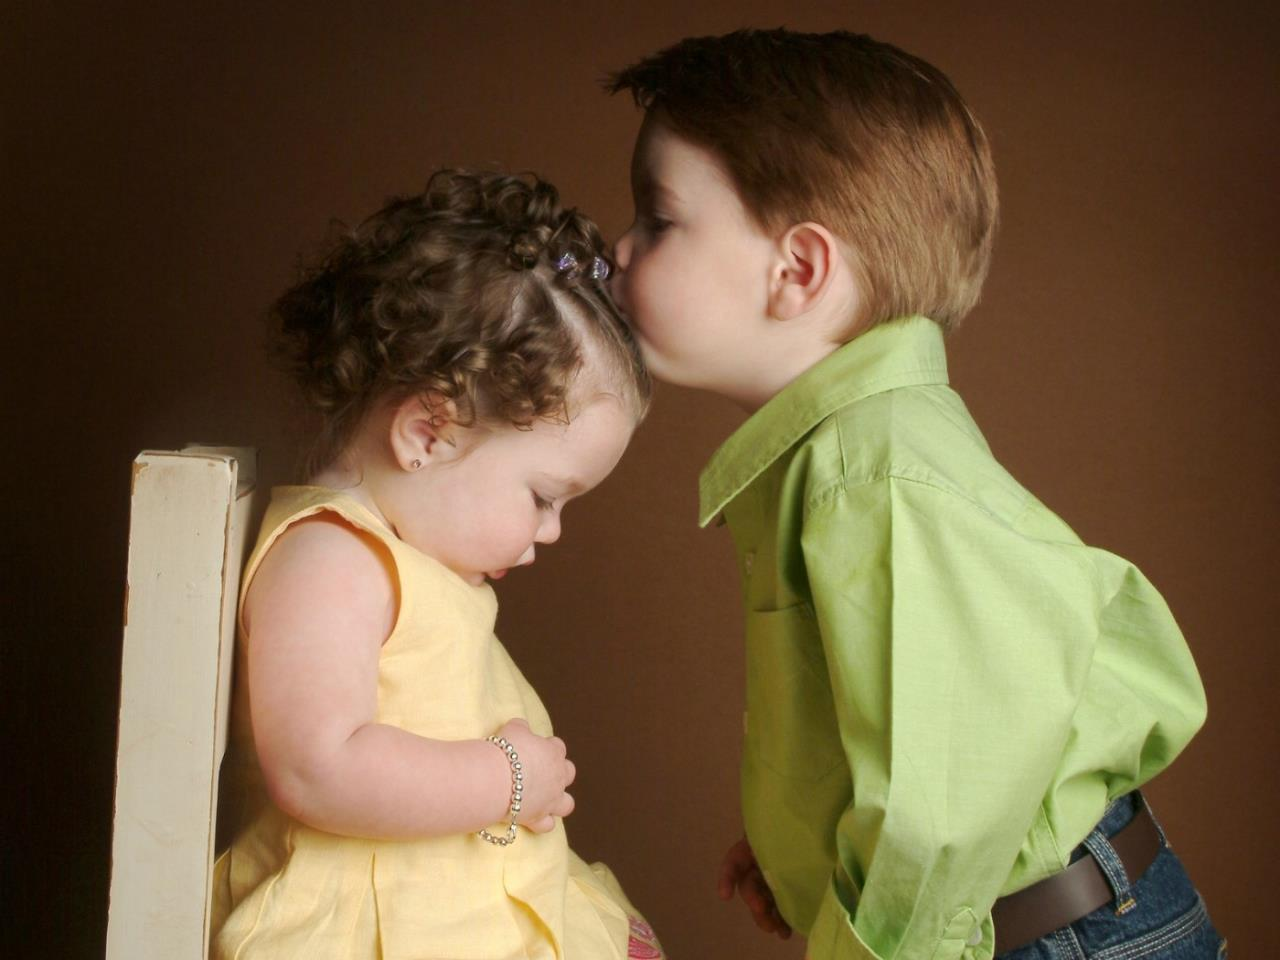 cute baby kiss wallpaper